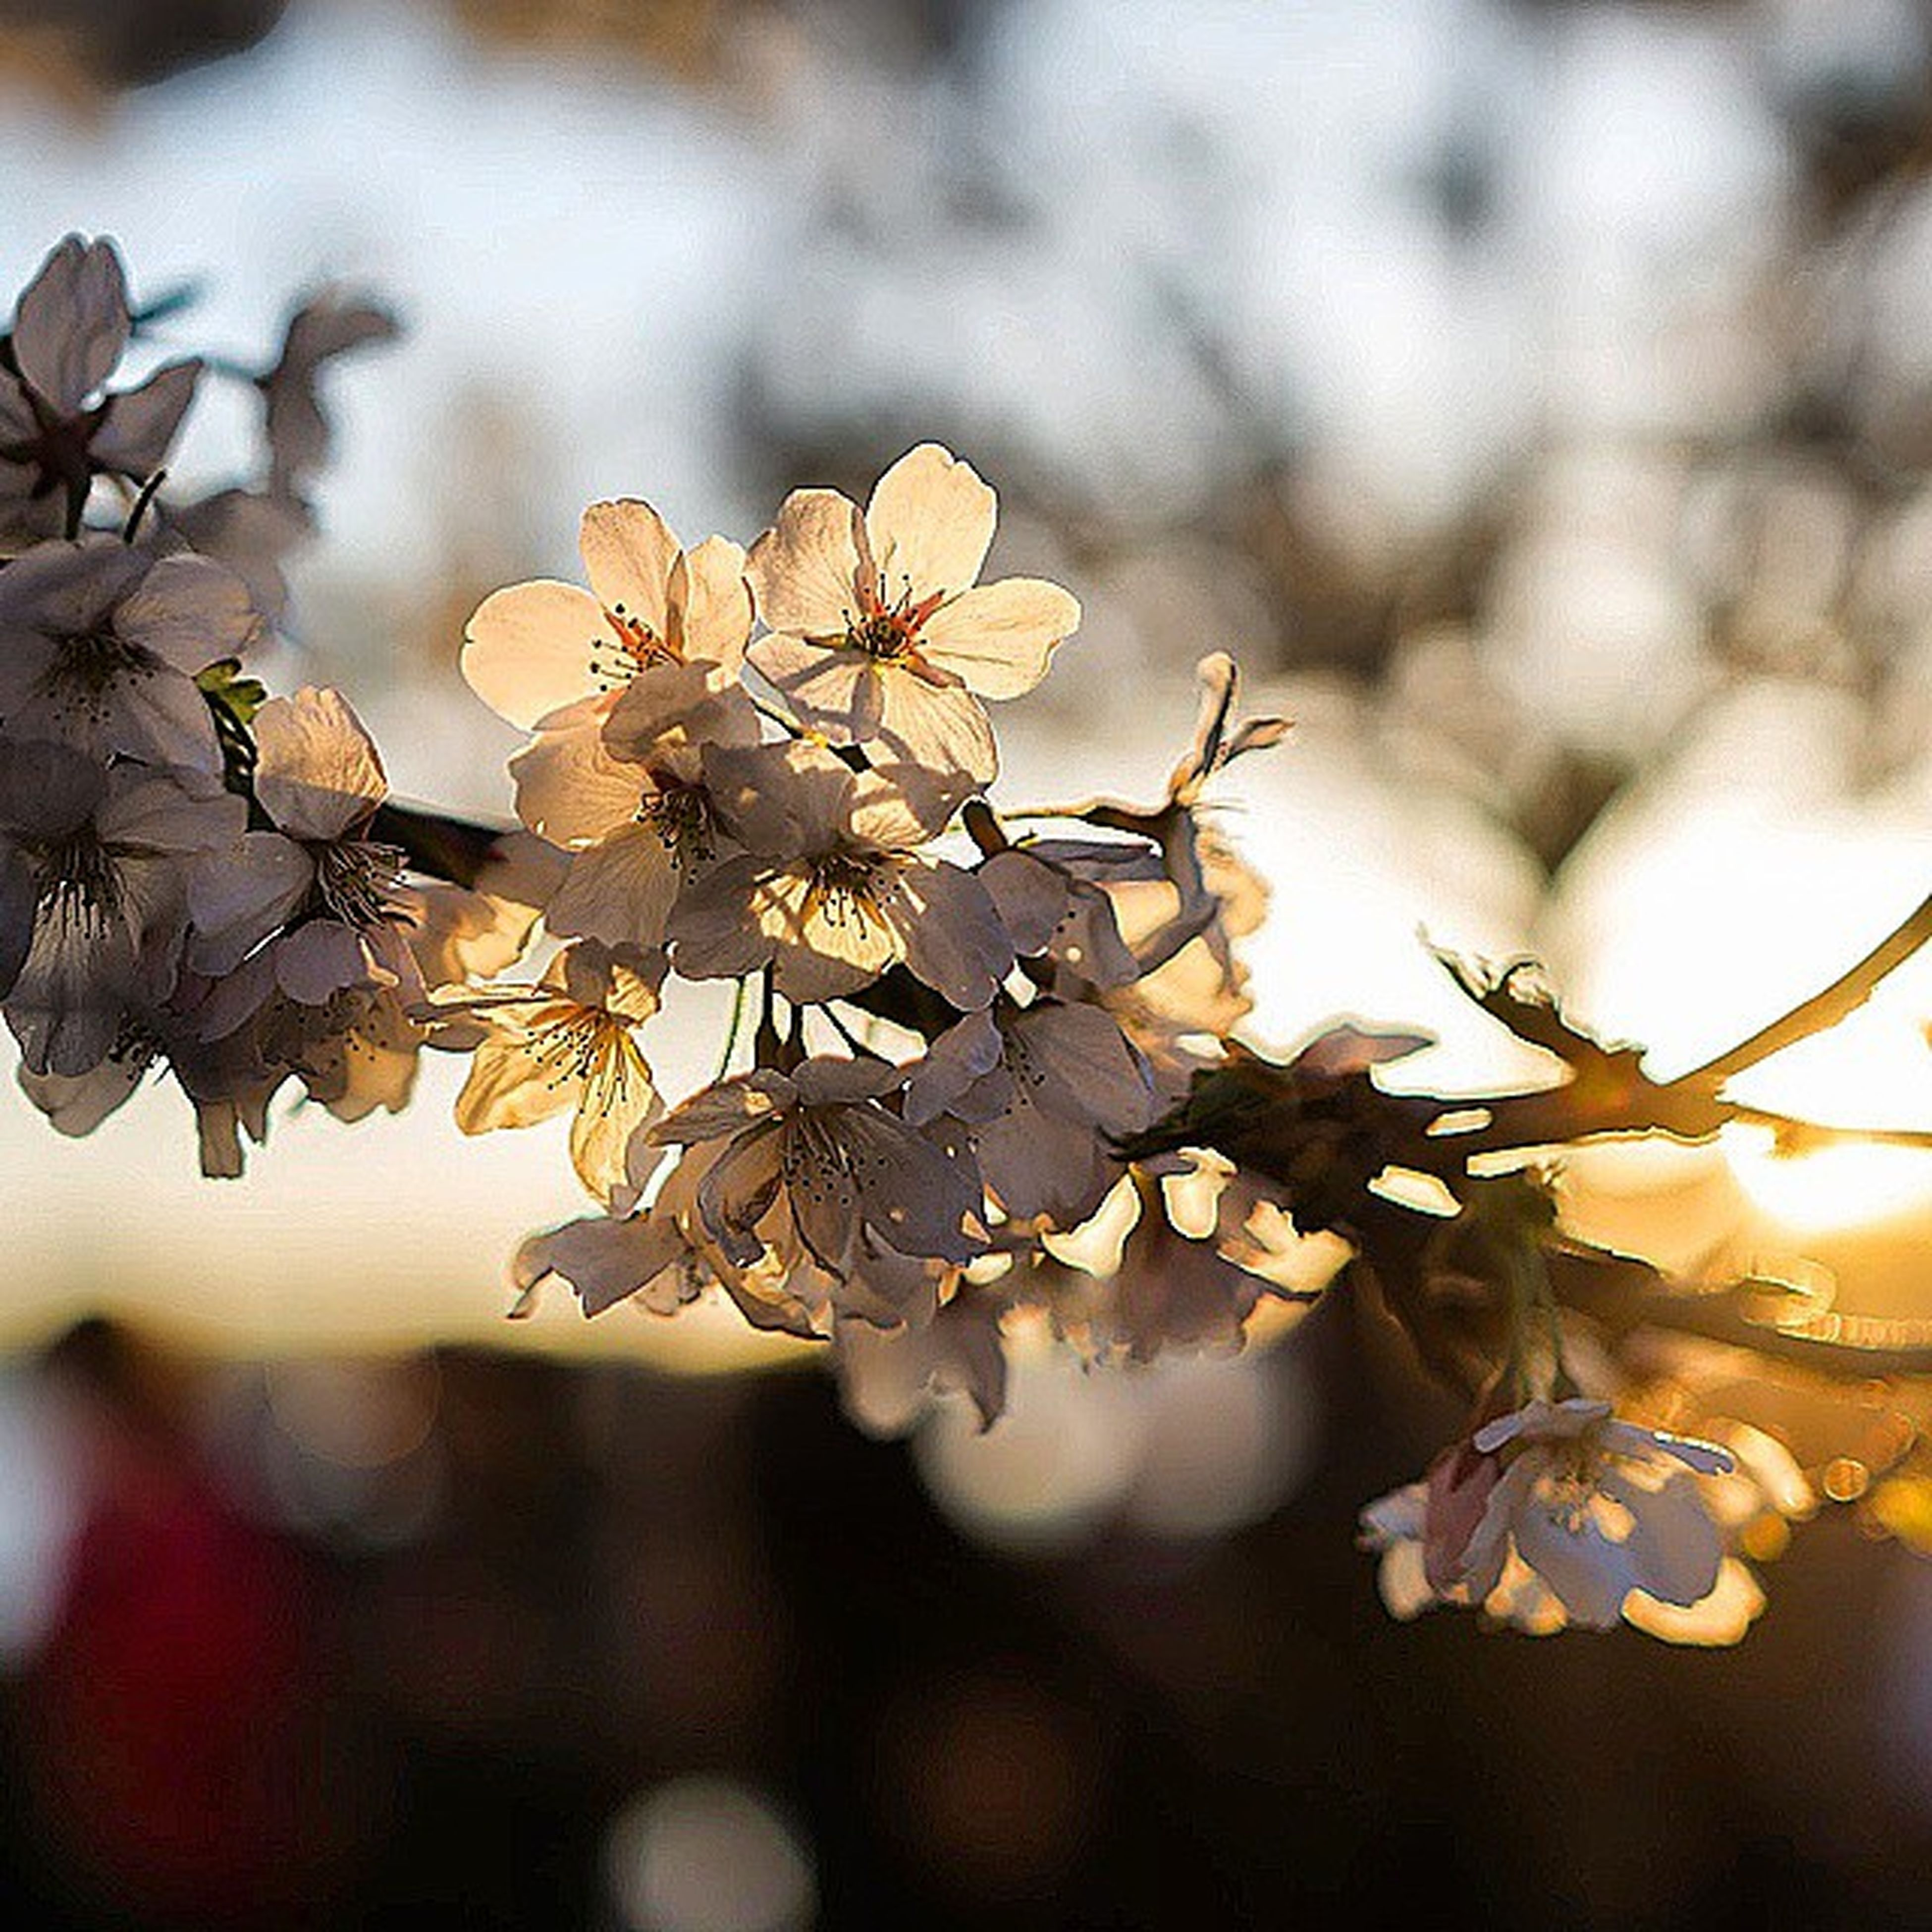 branch, growth, focus on foreground, nature, twig, close-up, flower, leaf, beauty in nature, freshness, fragility, tree, season, selective focus, plant, outdoors, botany, no people, day, tranquility